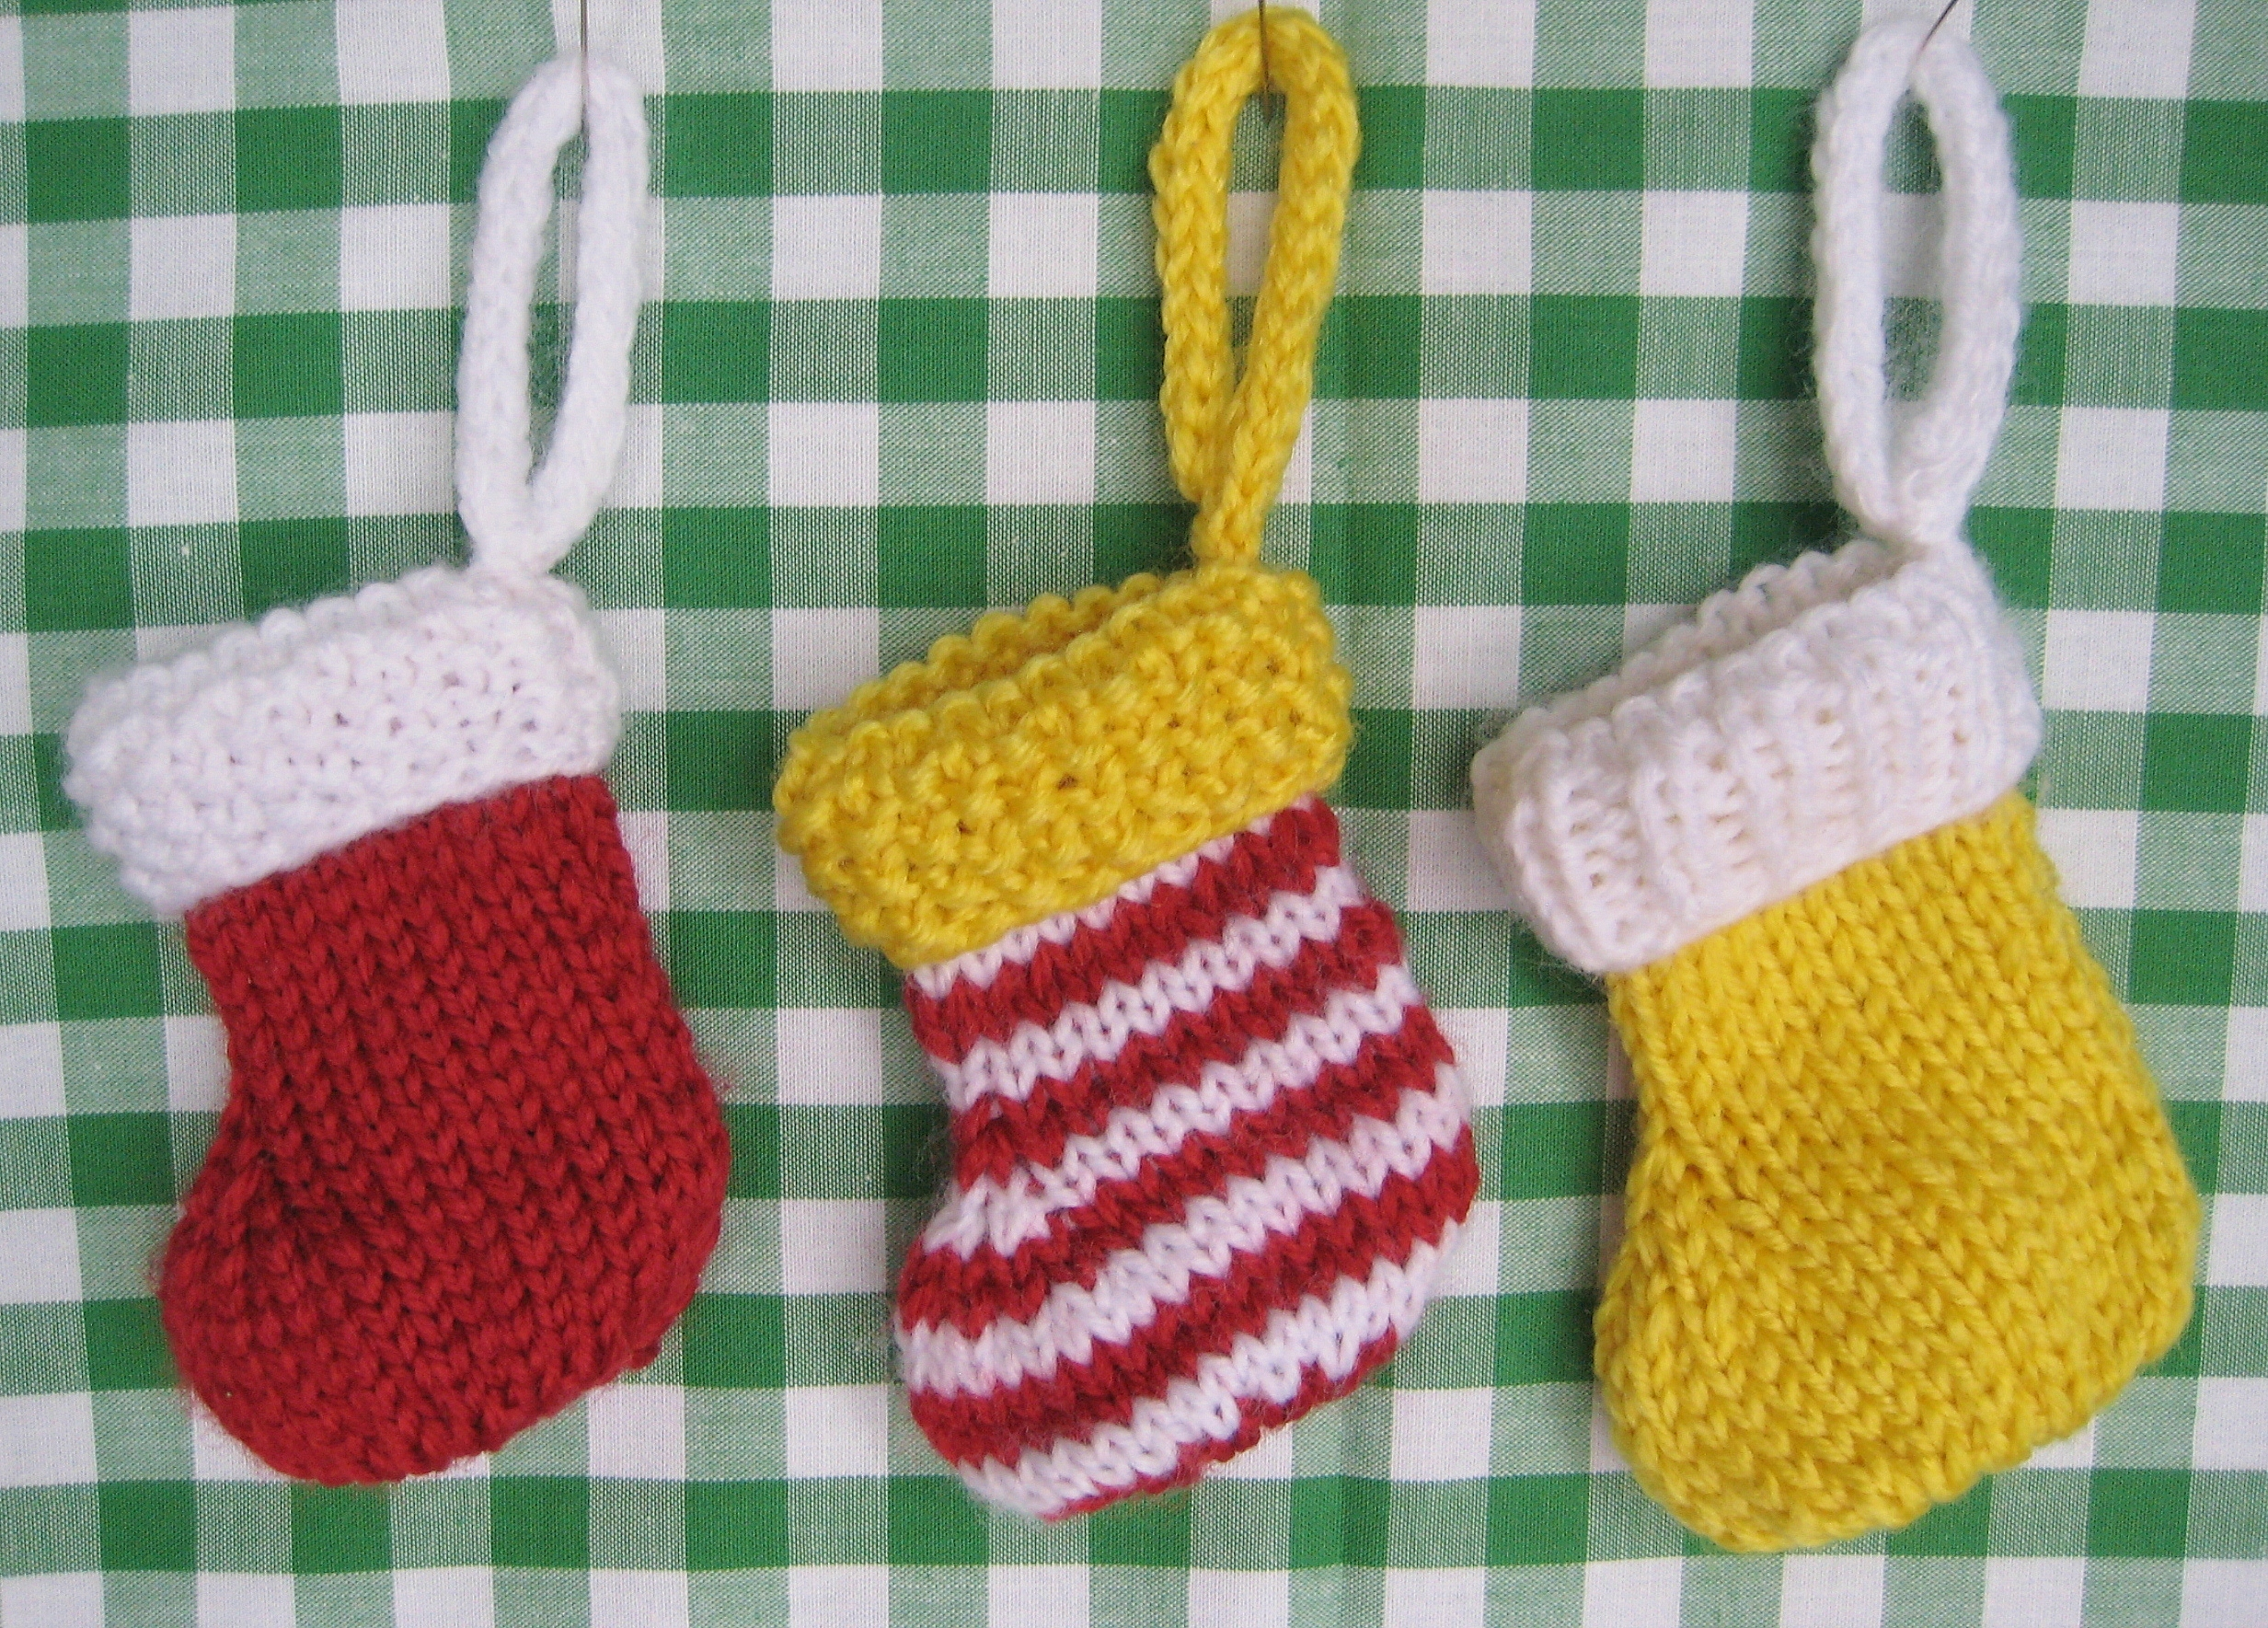 Easy Knitting Ideas For Christmas : Knitting patterns galore little christmas stocking for